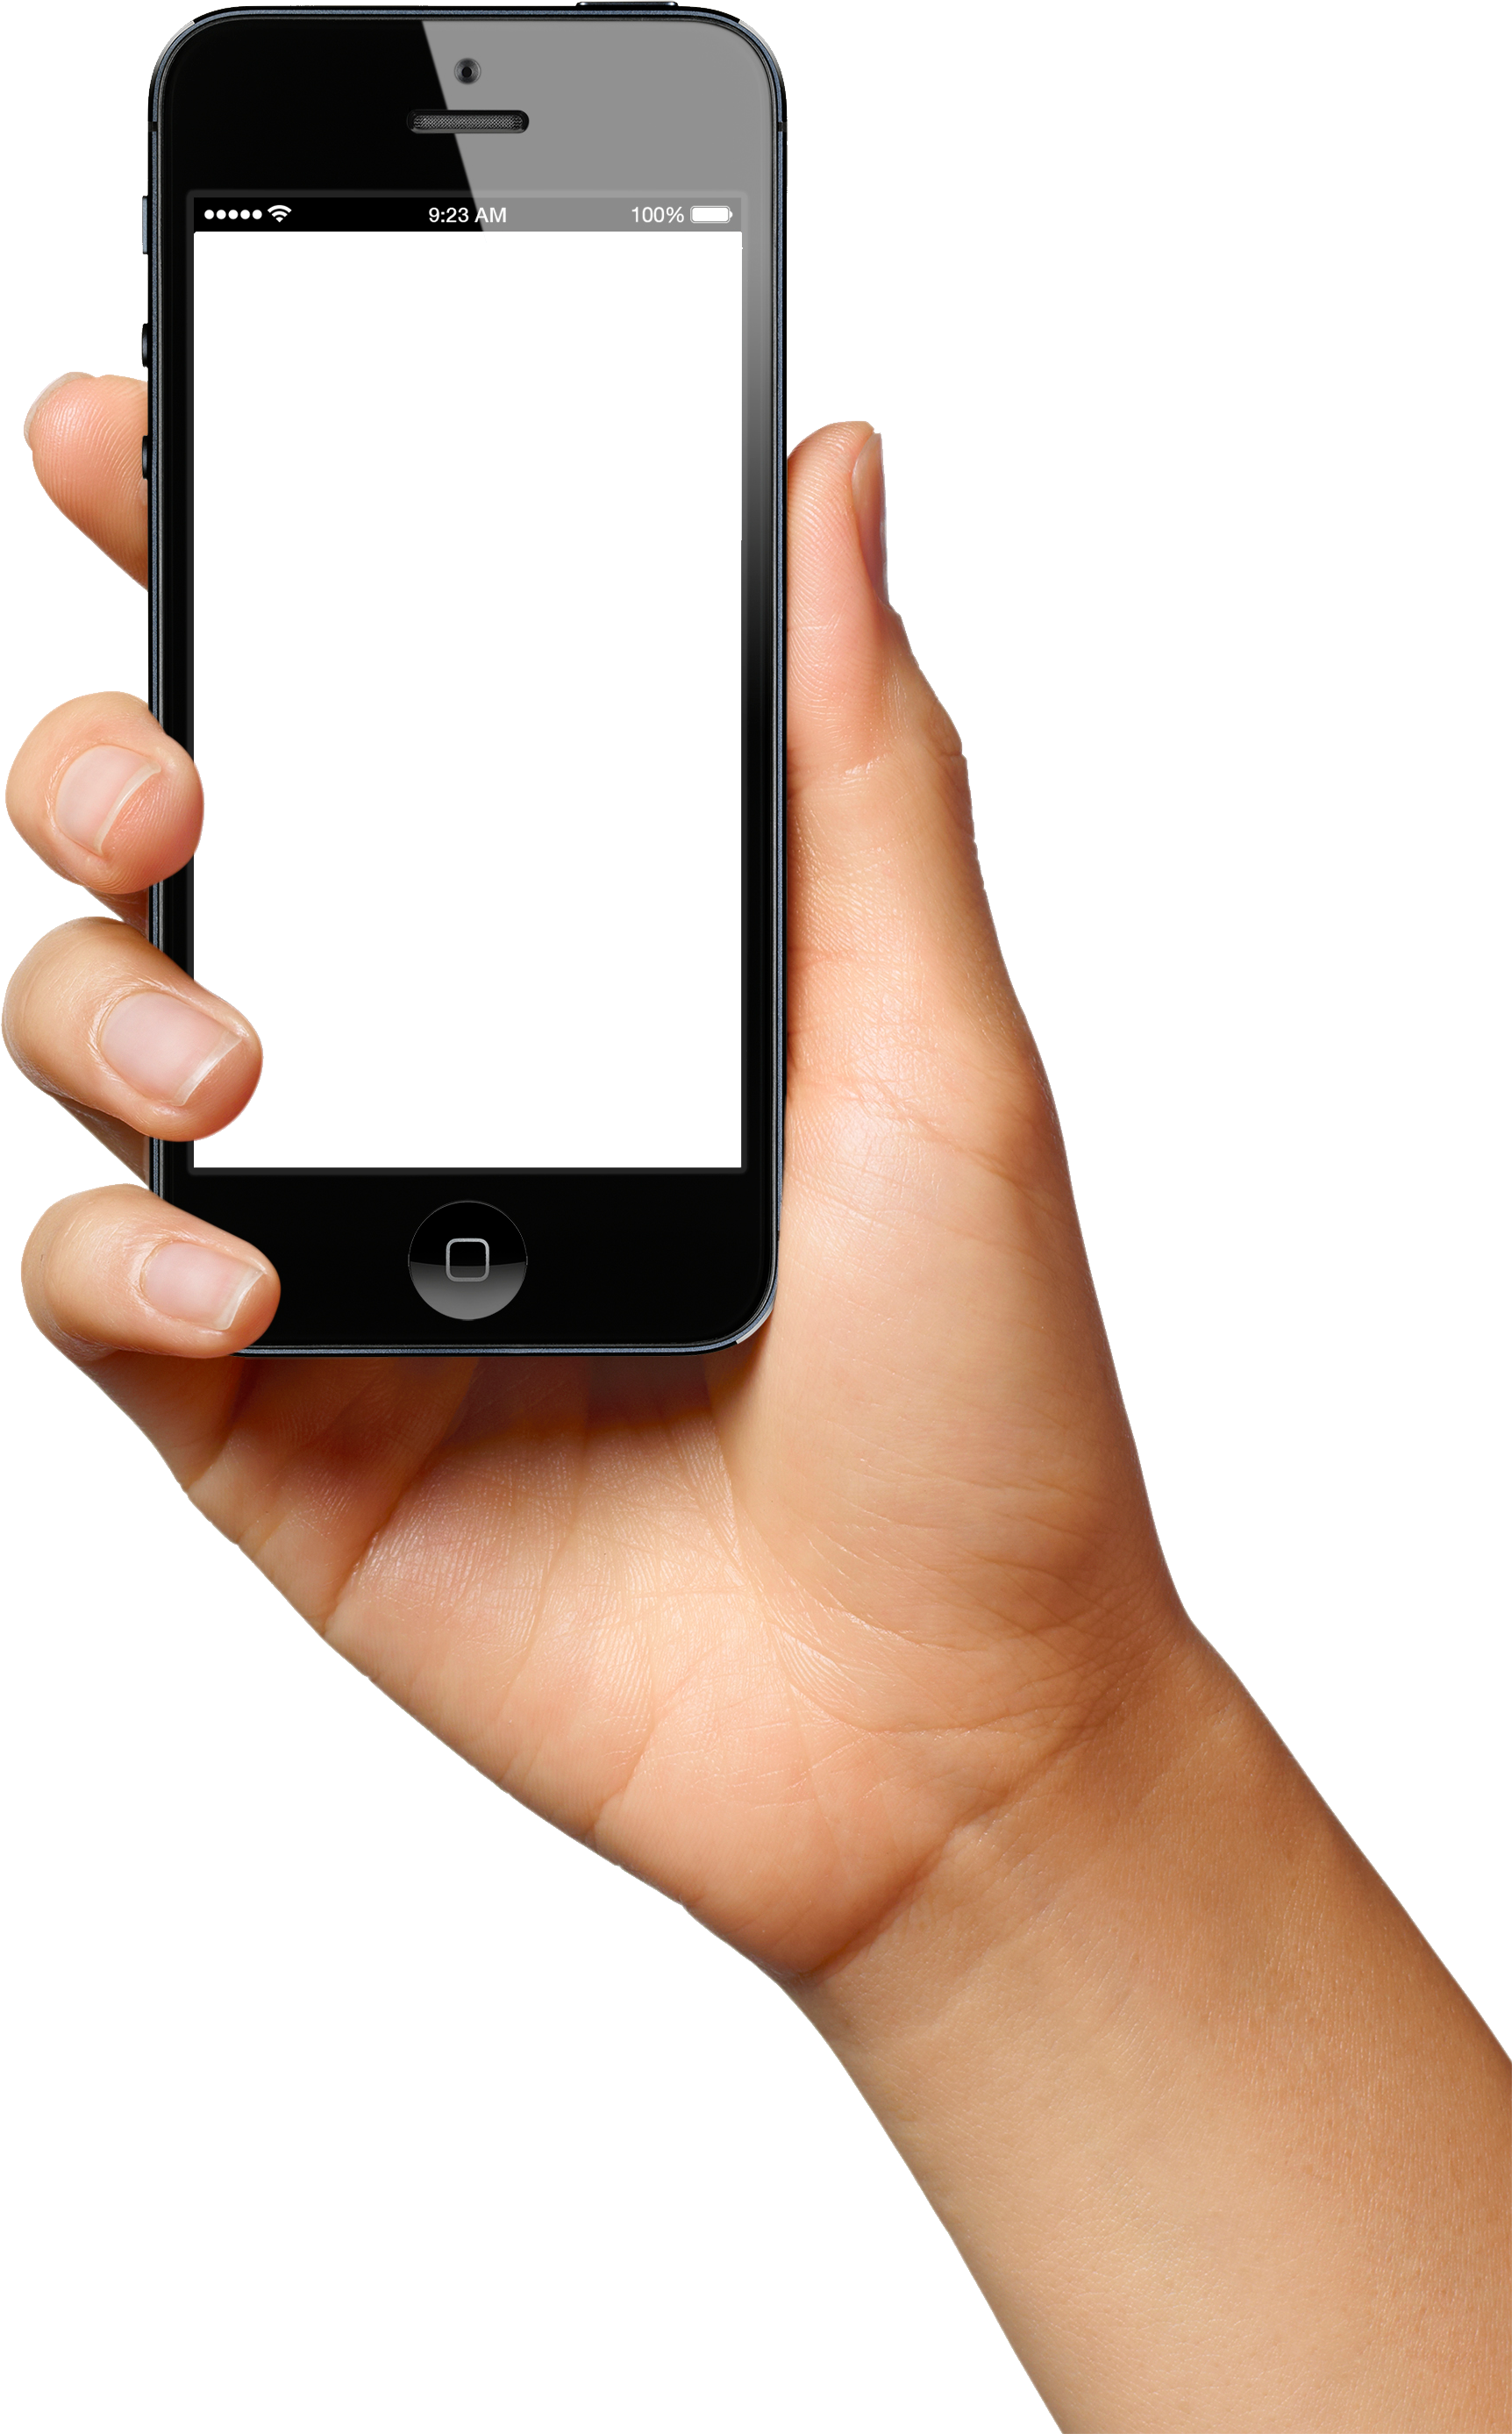 Hand holding cellphone png. Smartphone images free download